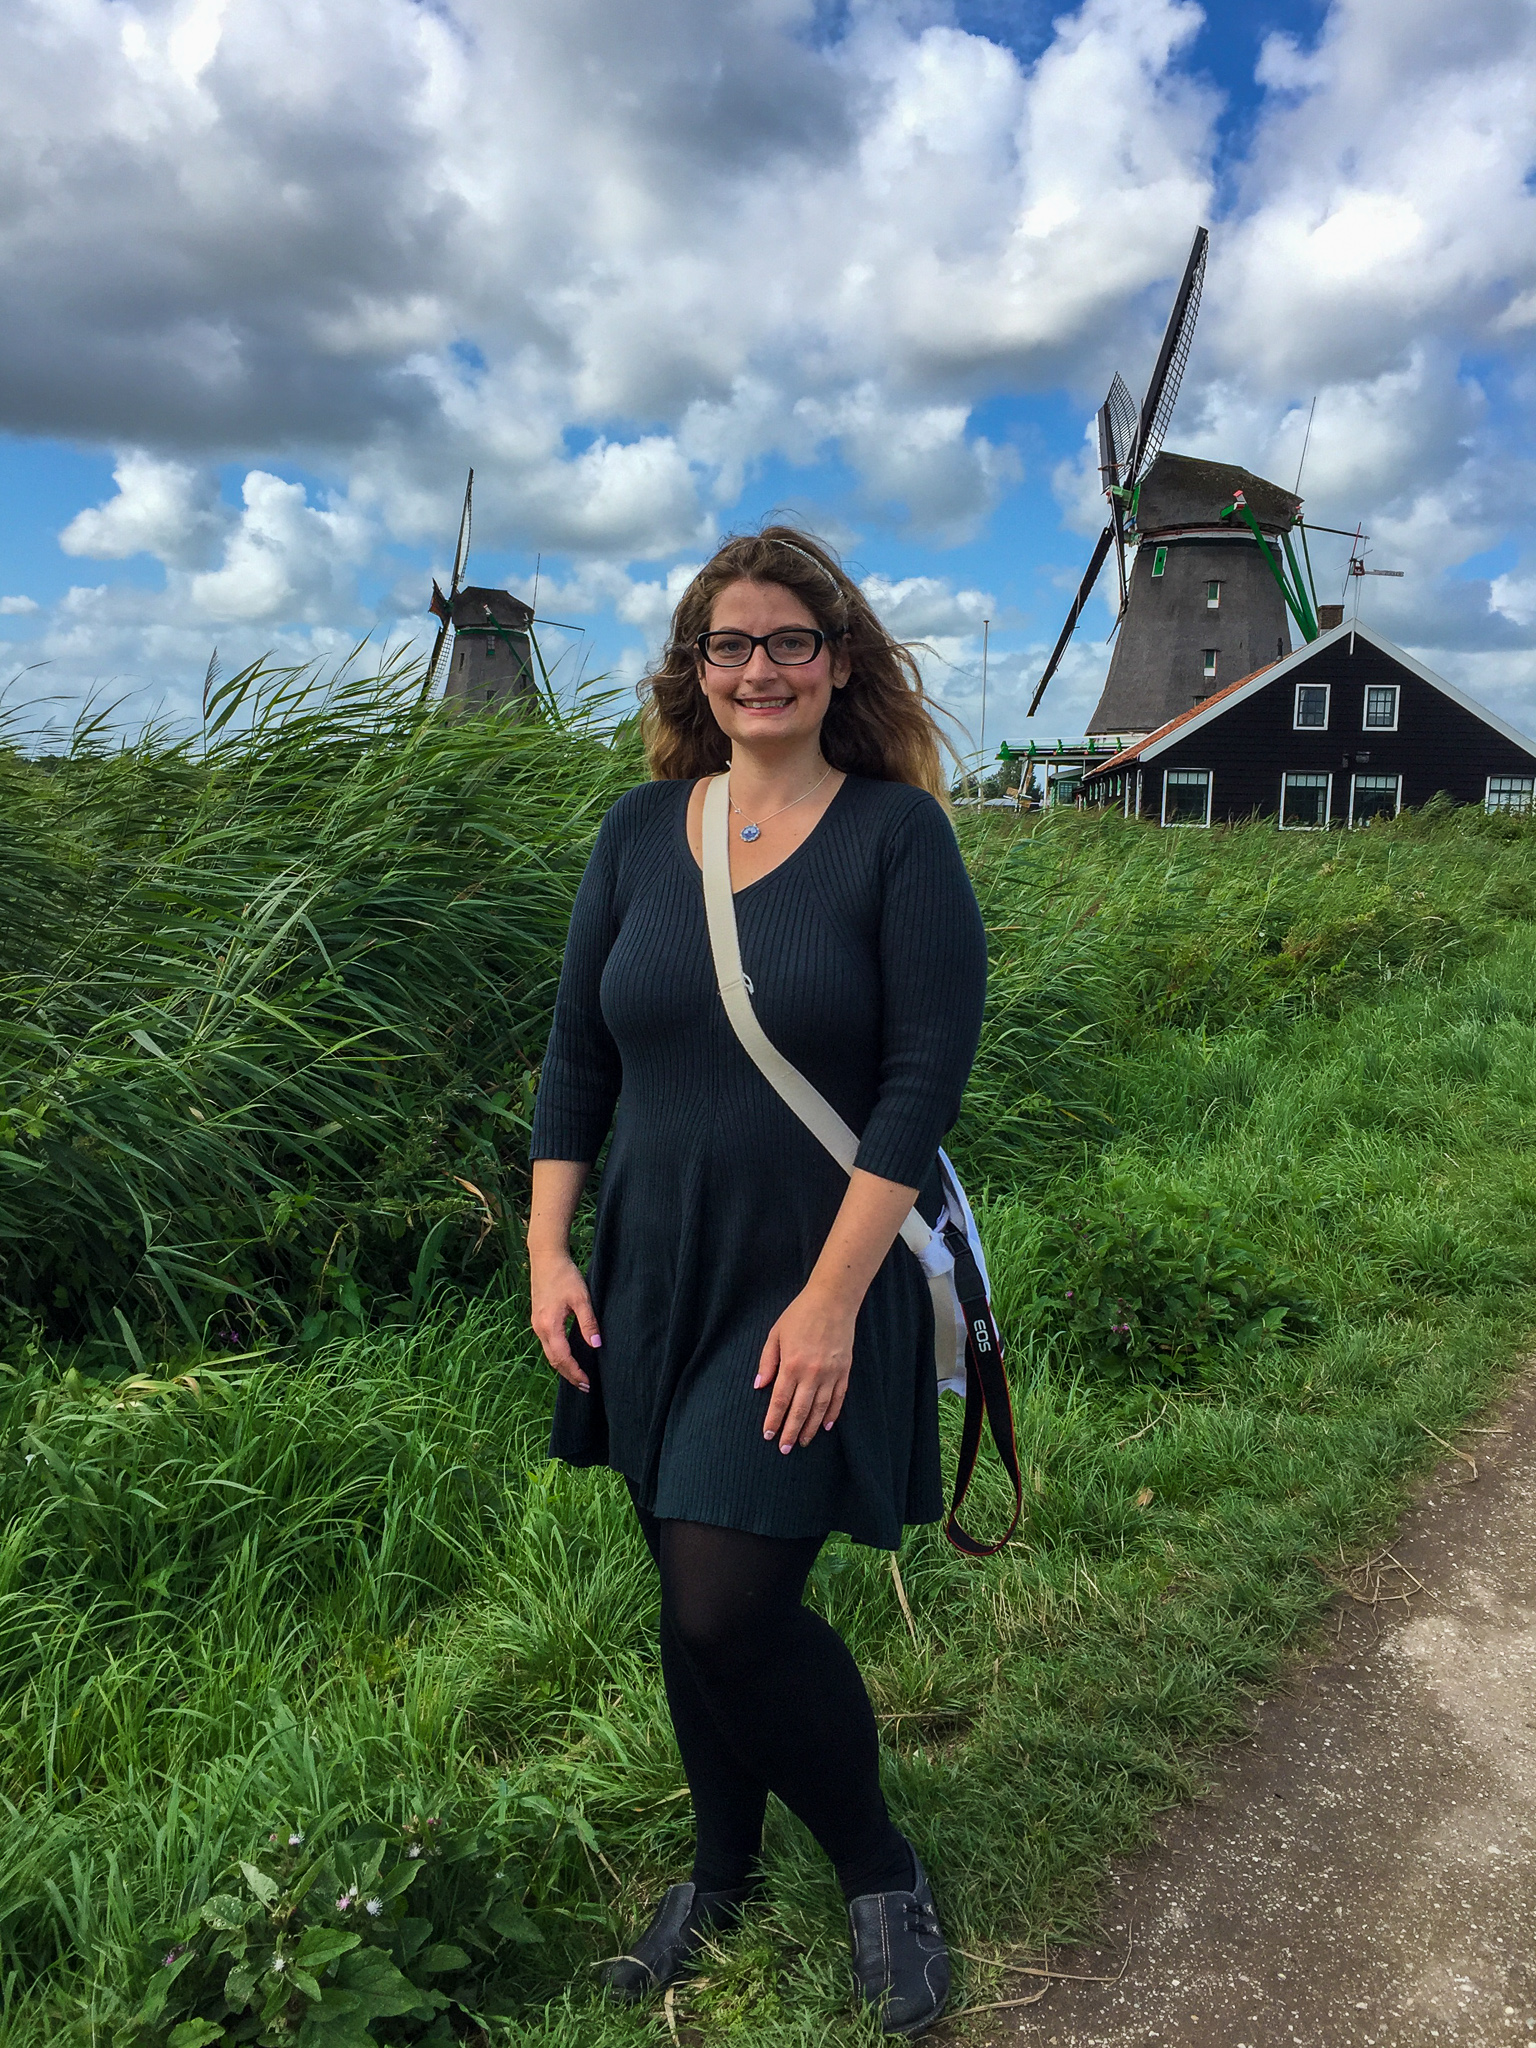 zaanse schans what to do: of course the windmills